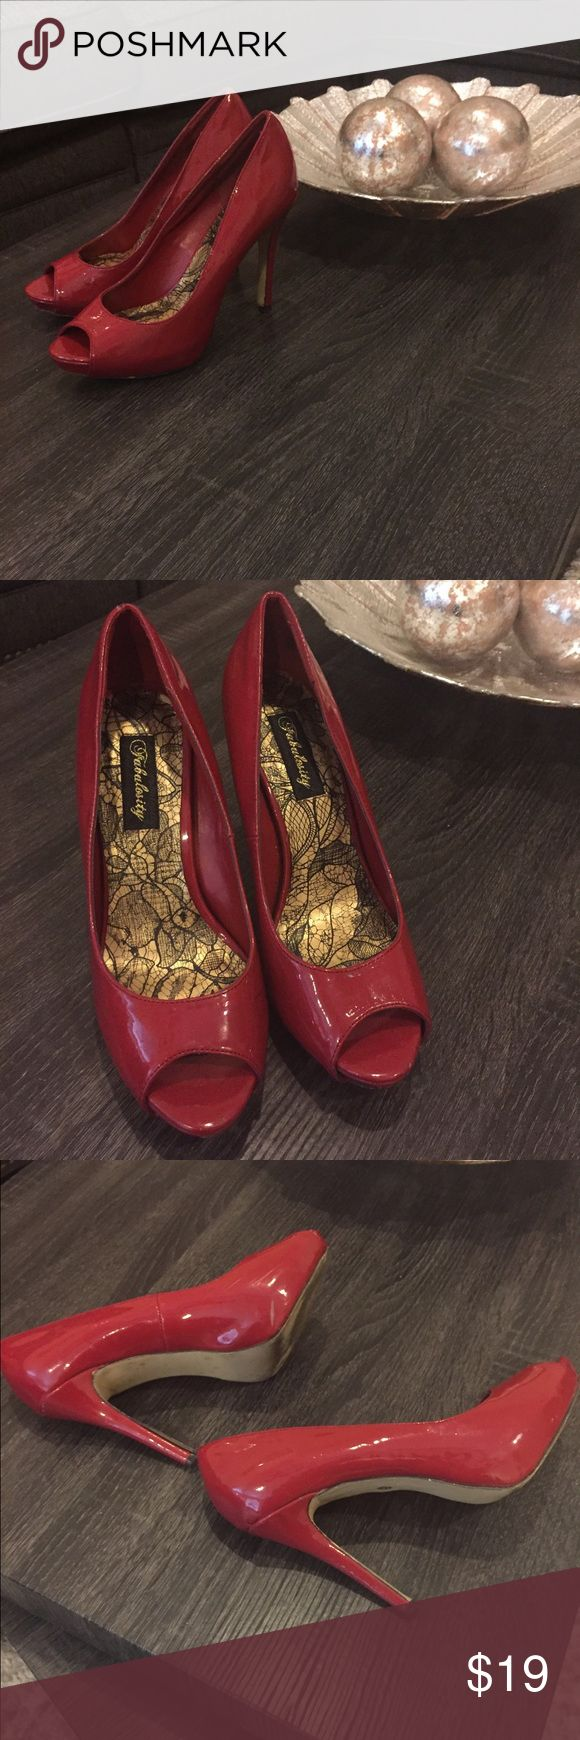 Red peep toe pumps  Red Peep Toe Pumps Size 7.5 Fabulosity Shoes Heels